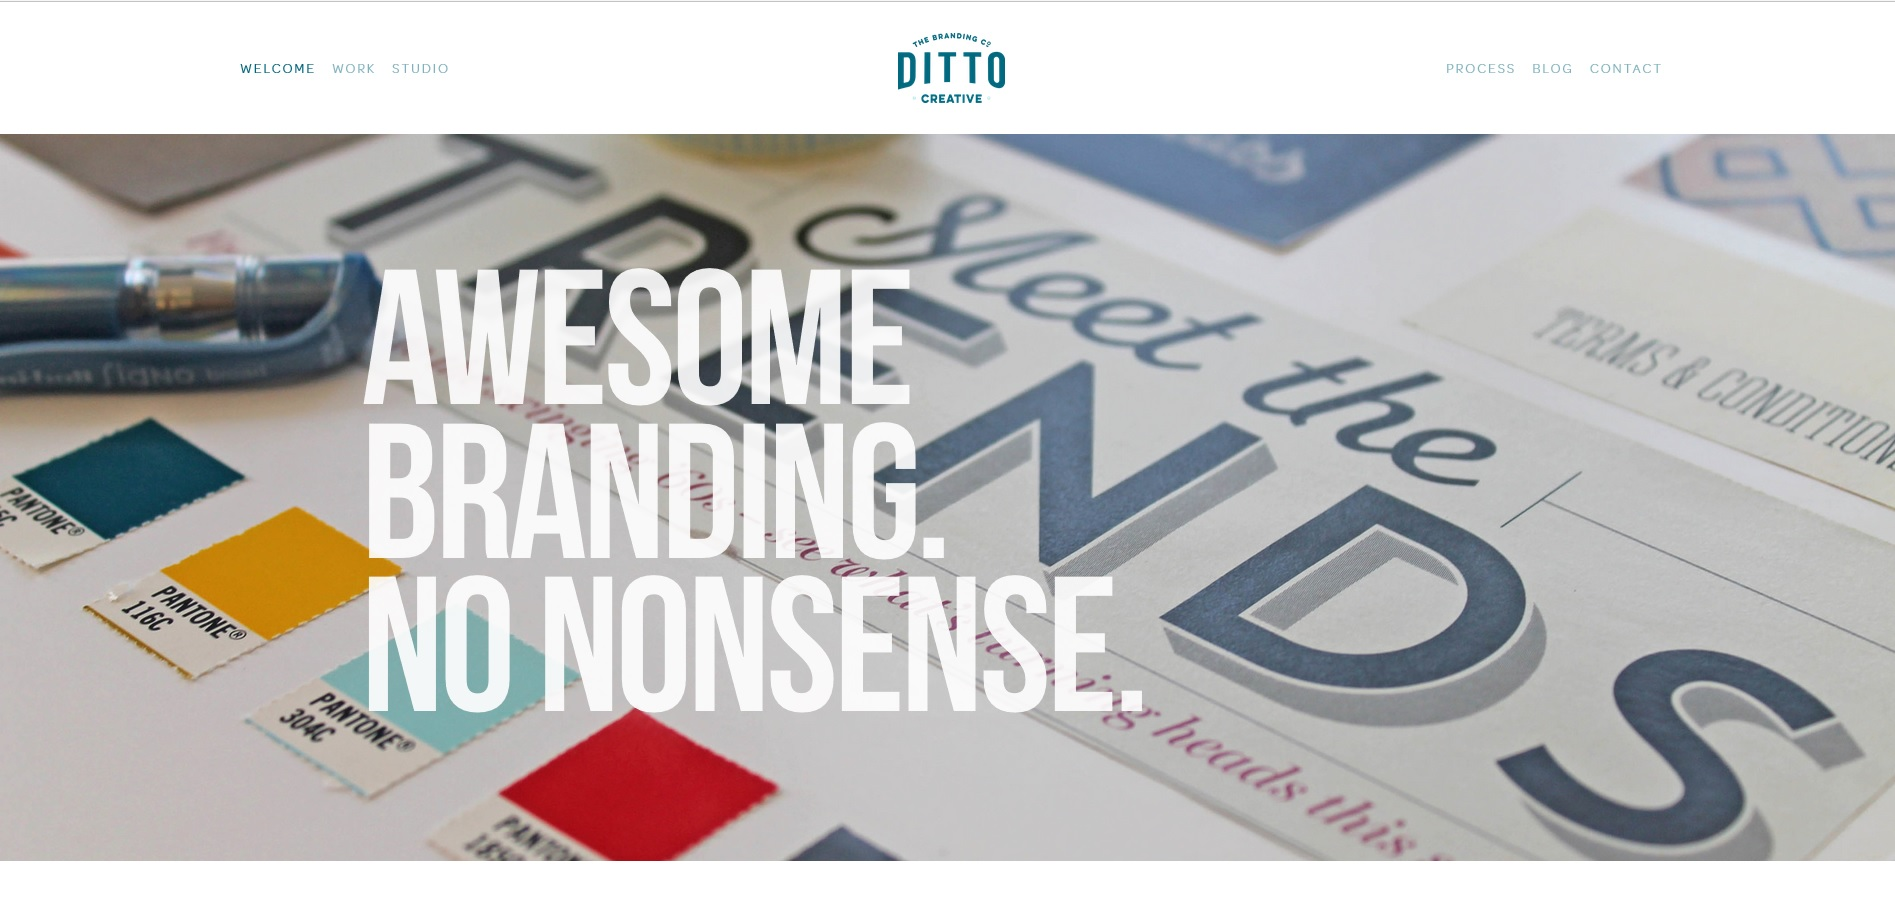 Ditto Creative design and branding agency Kent website design